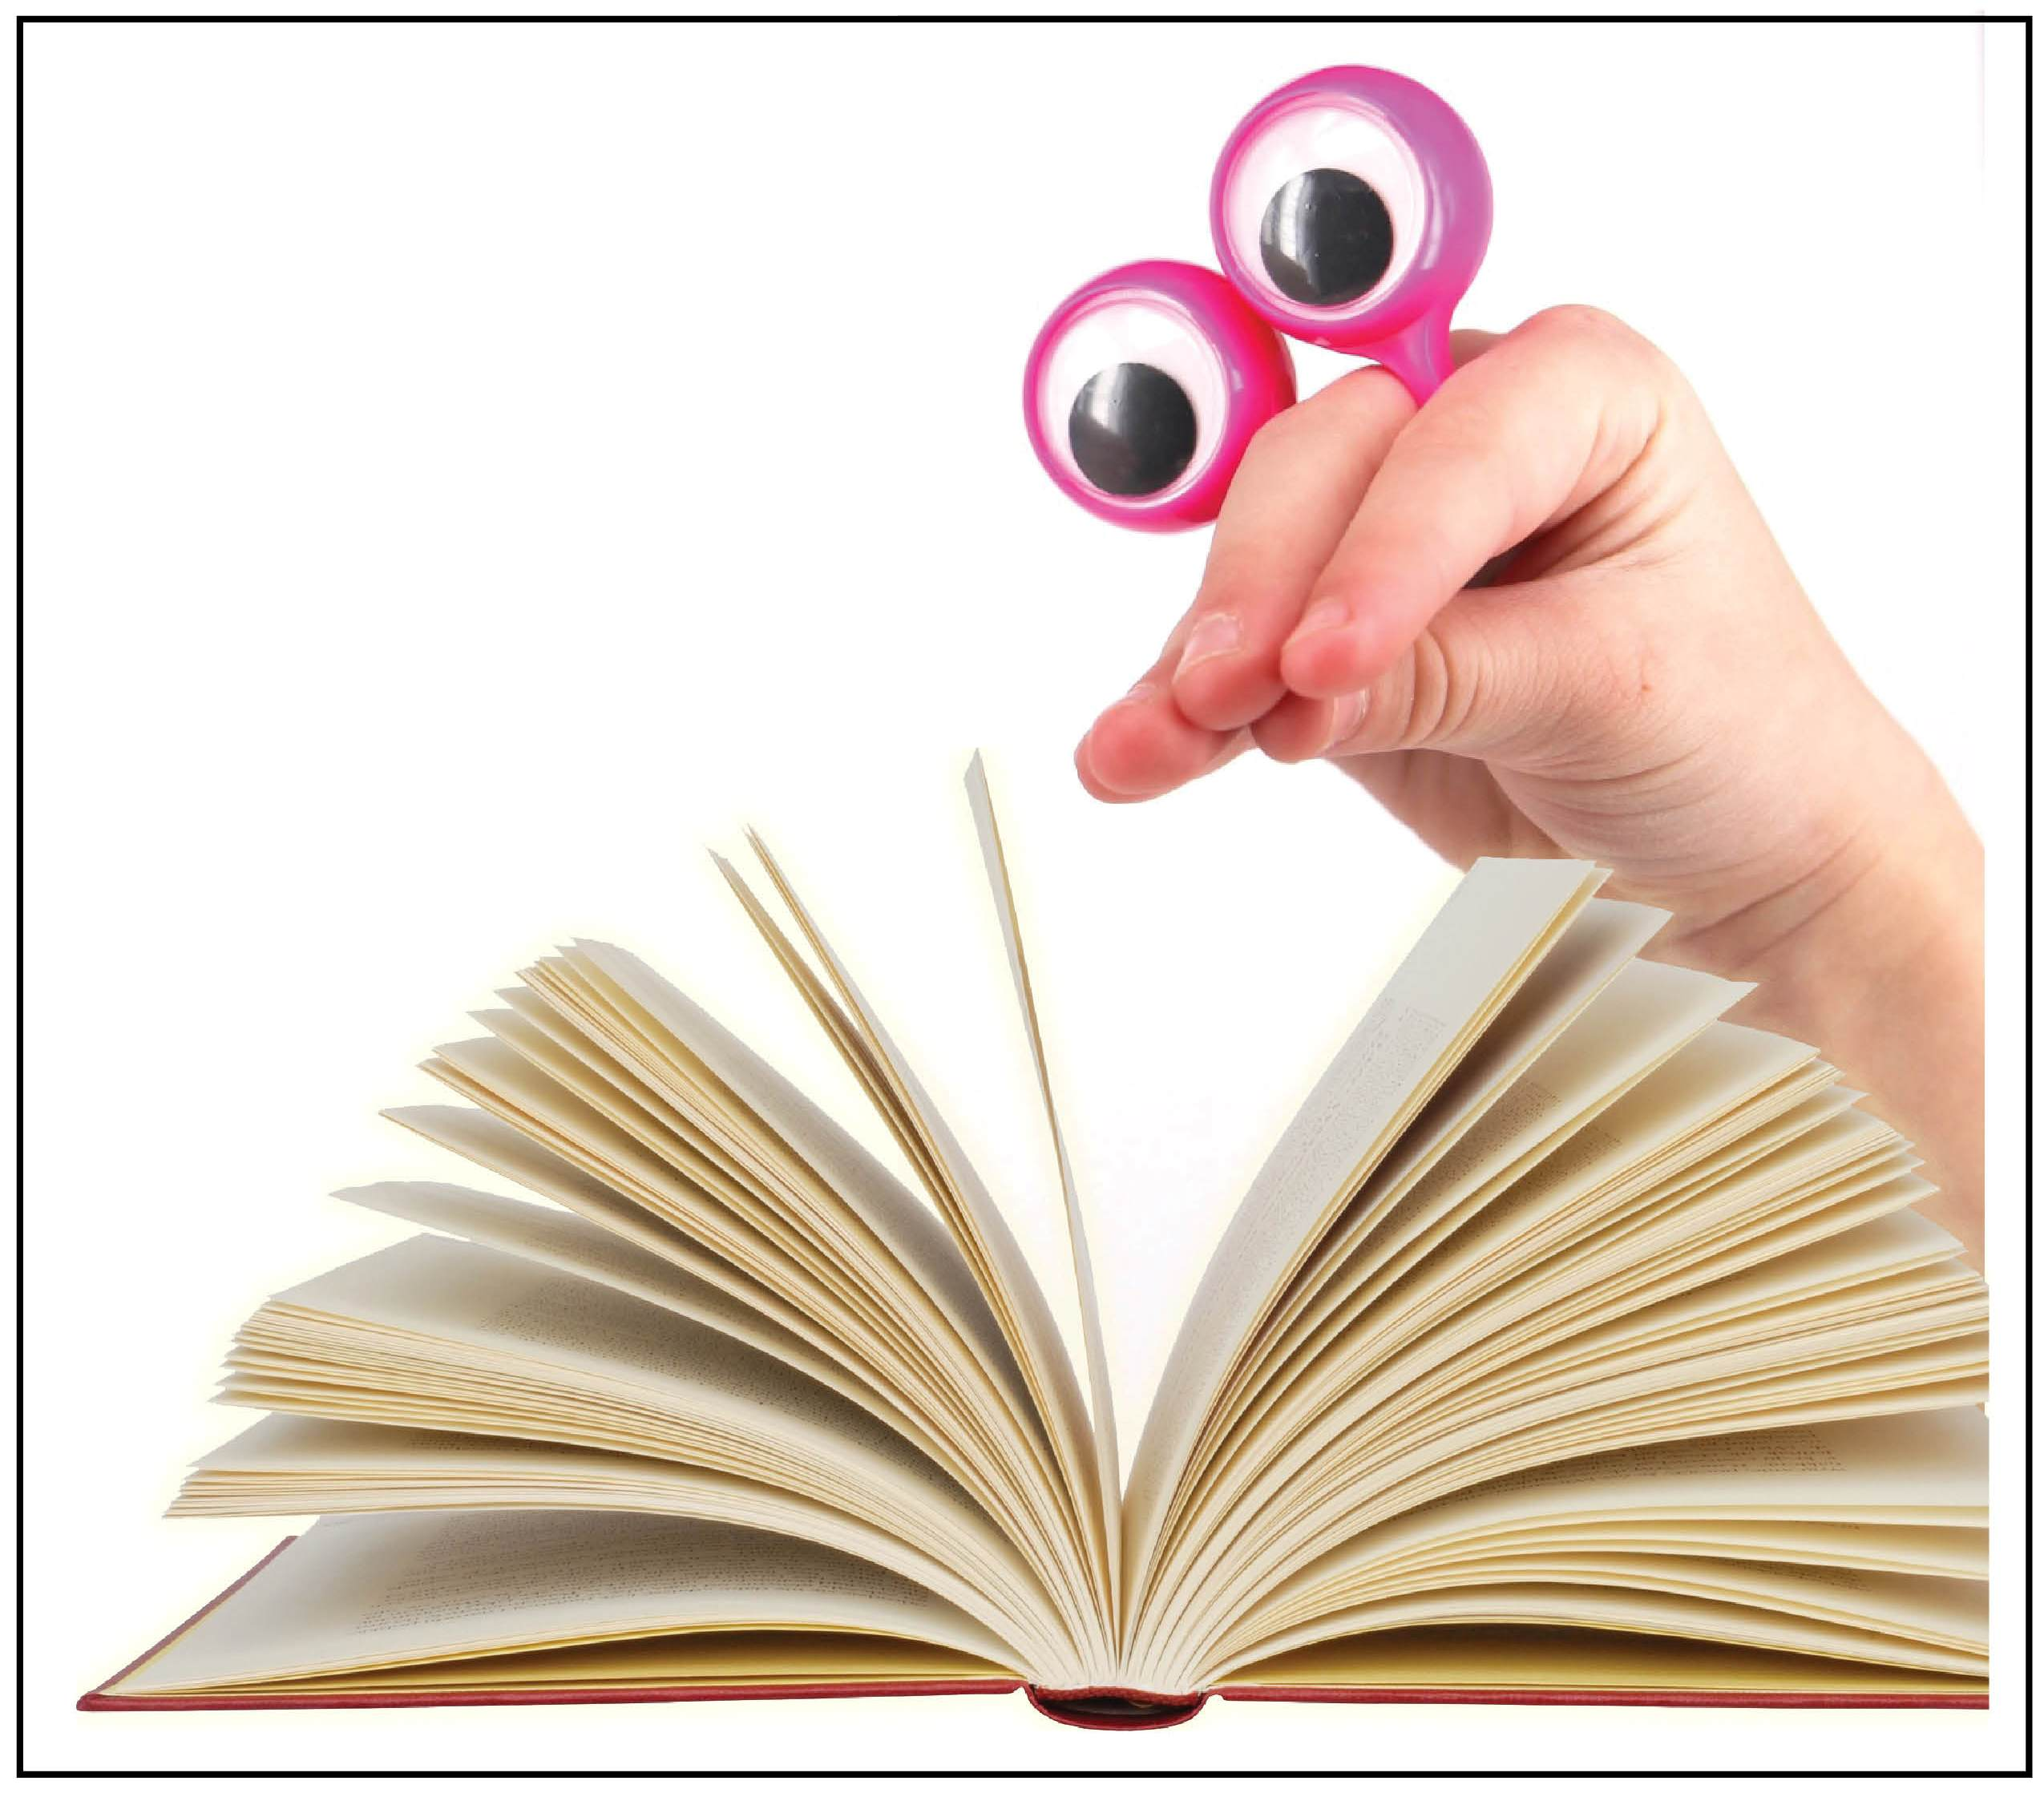 Finger Puppet for putting eyeballs on the text - Peepers' Link